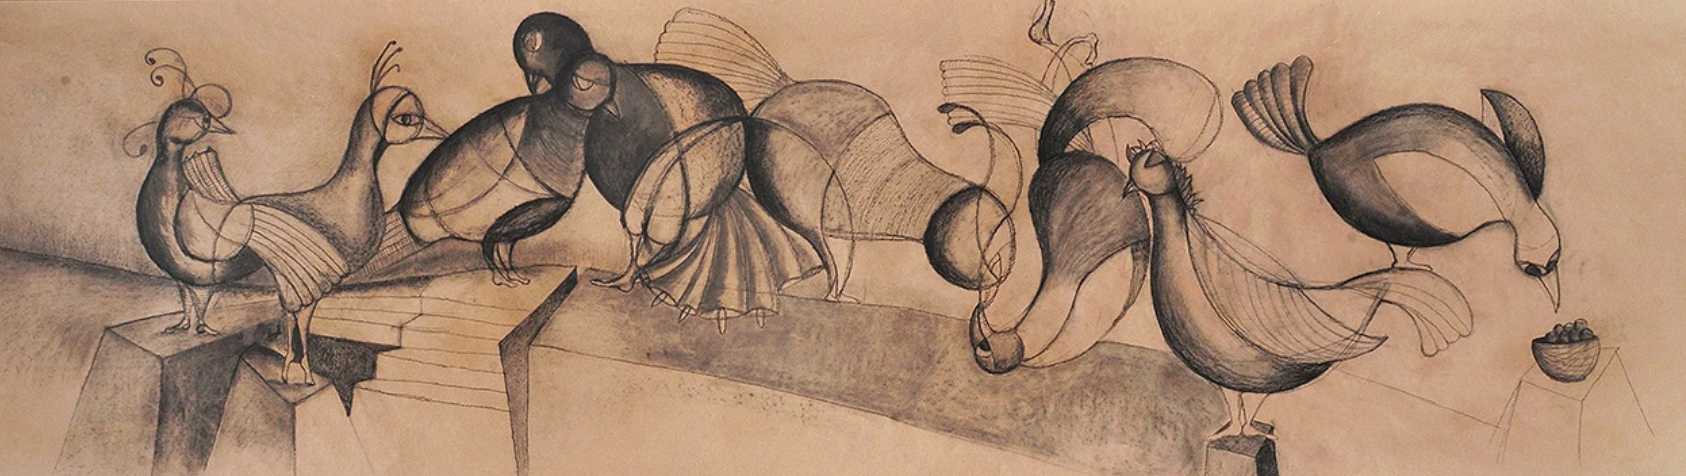 Dancer Birds, charcoal on craft paper, 26 x 126 inches